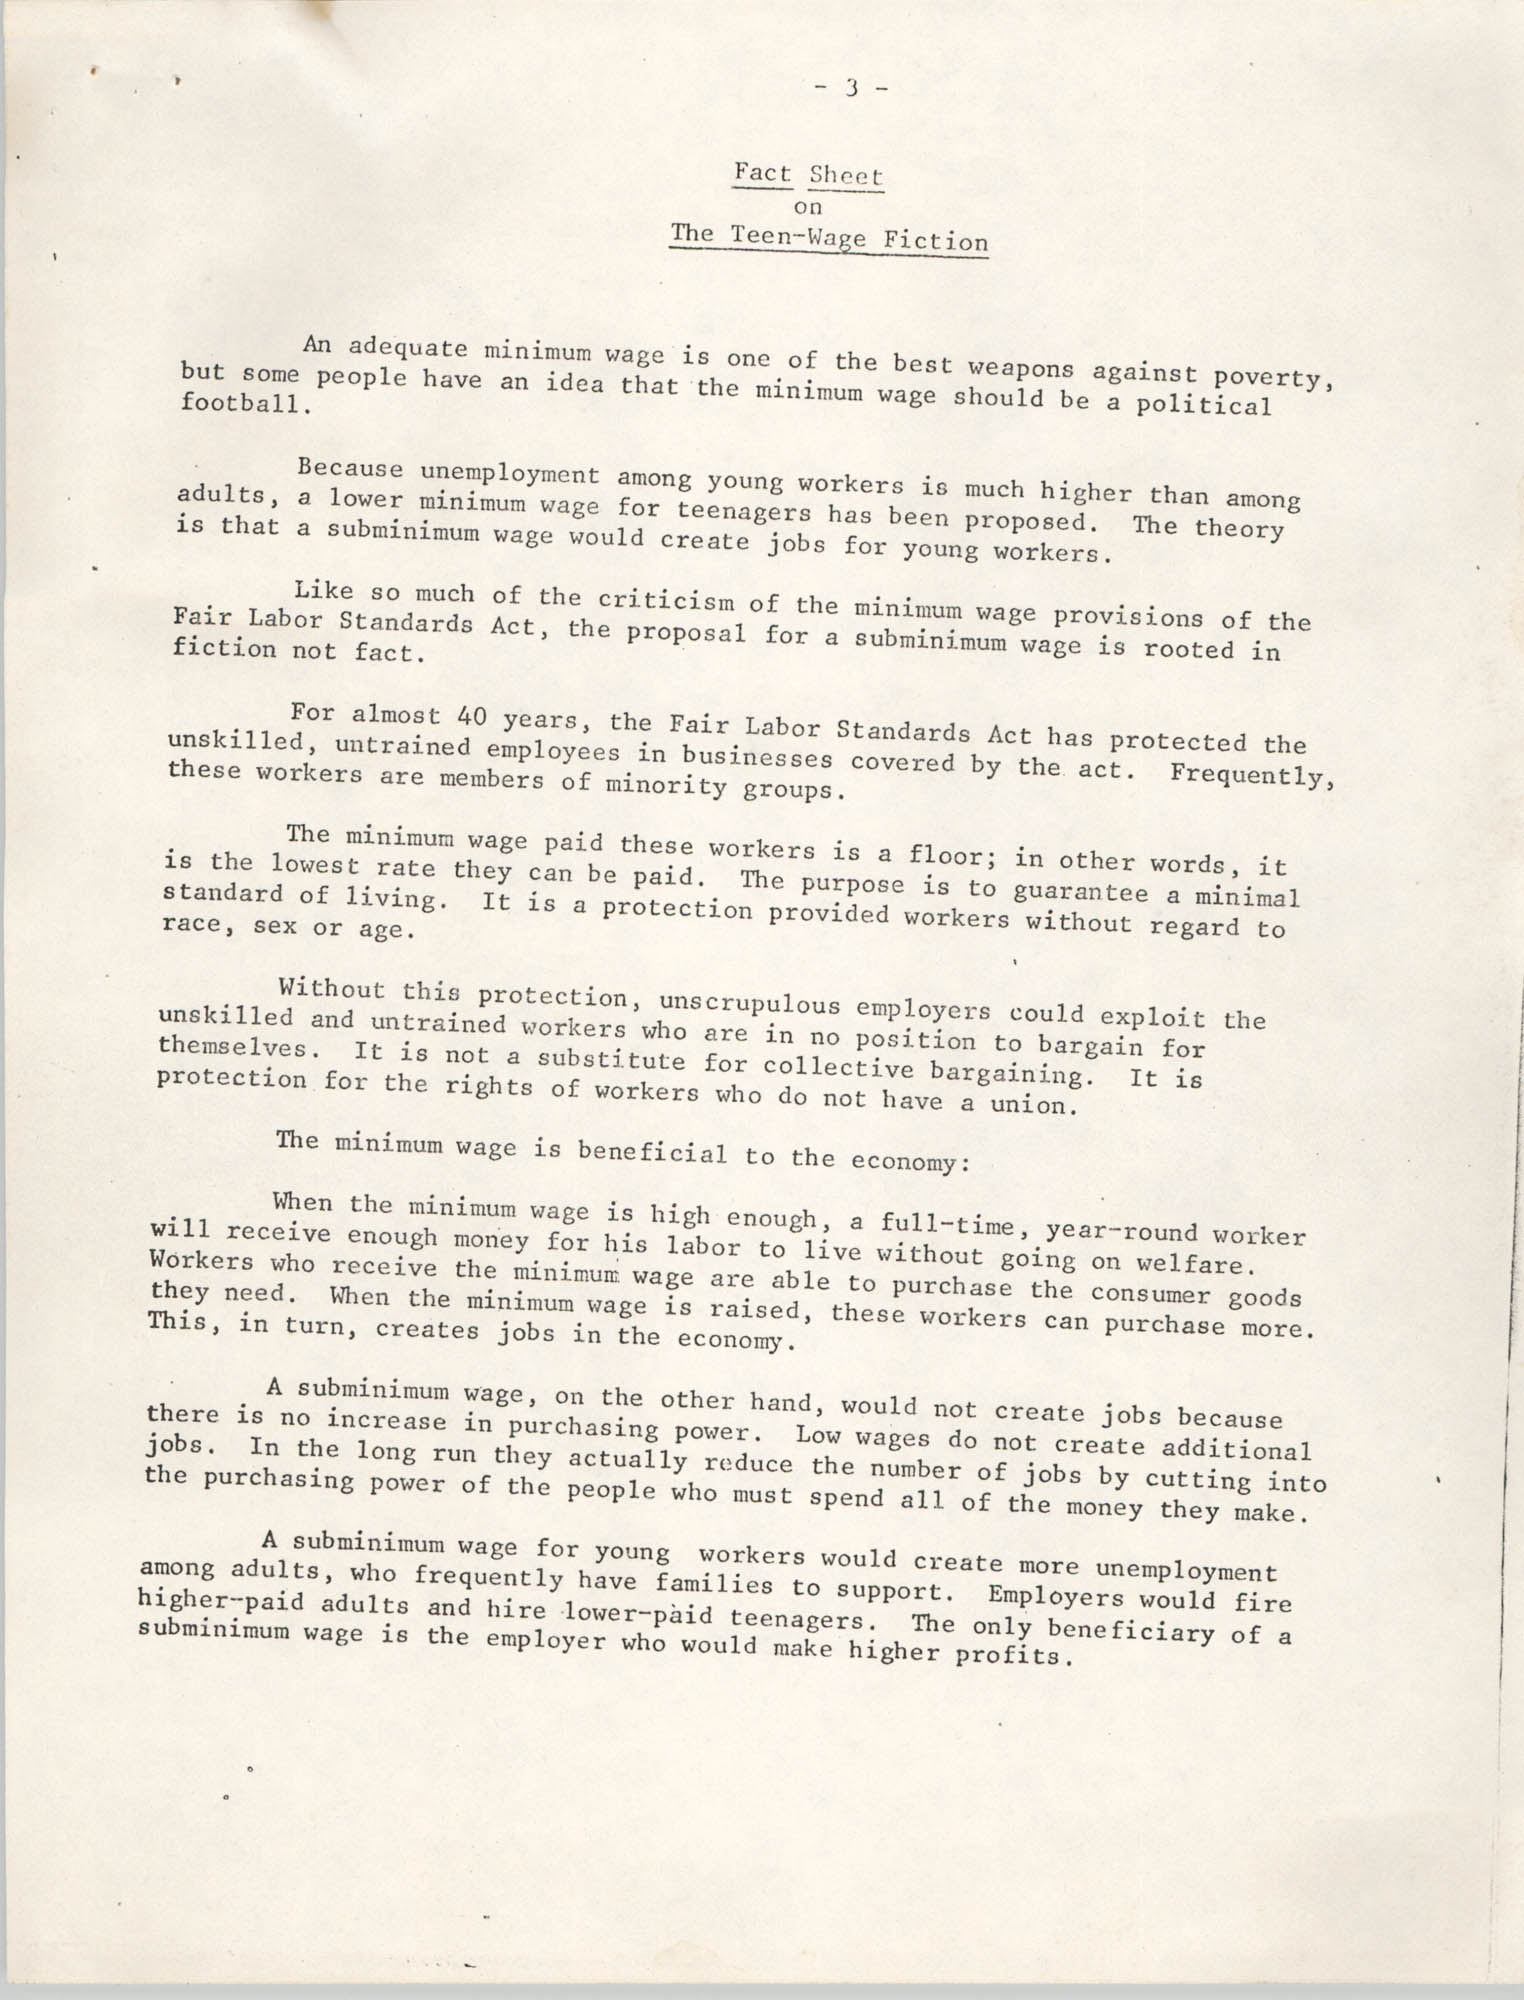 1977 Amendments to the Fair Labor Standards Act, Page 3